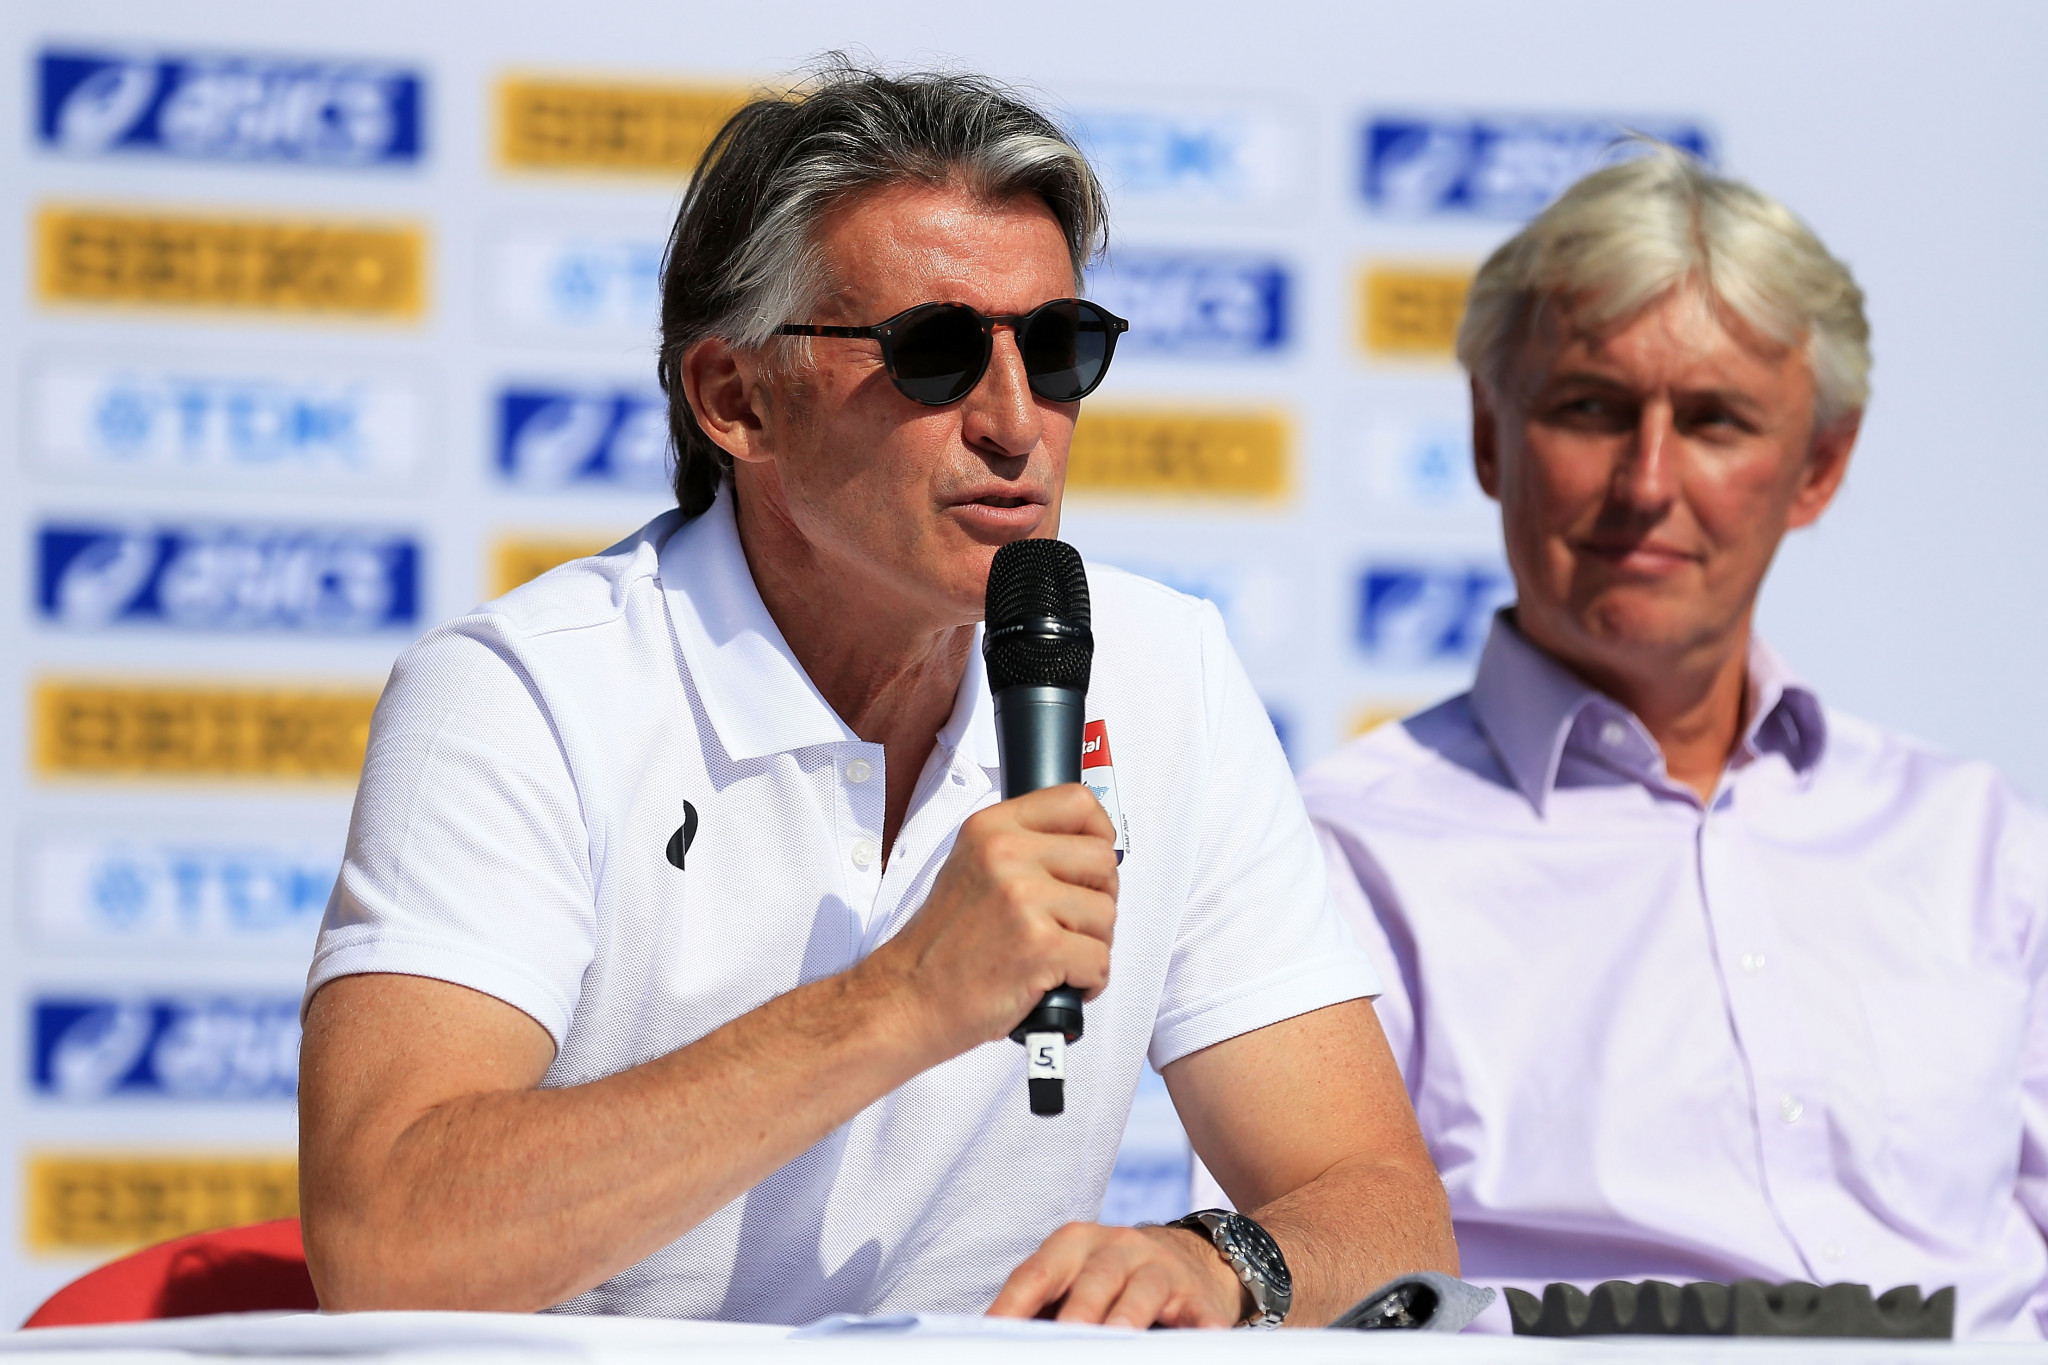 IAAF President Sebastian Coe said the new rules were brought in to protect athletes from abuses committed